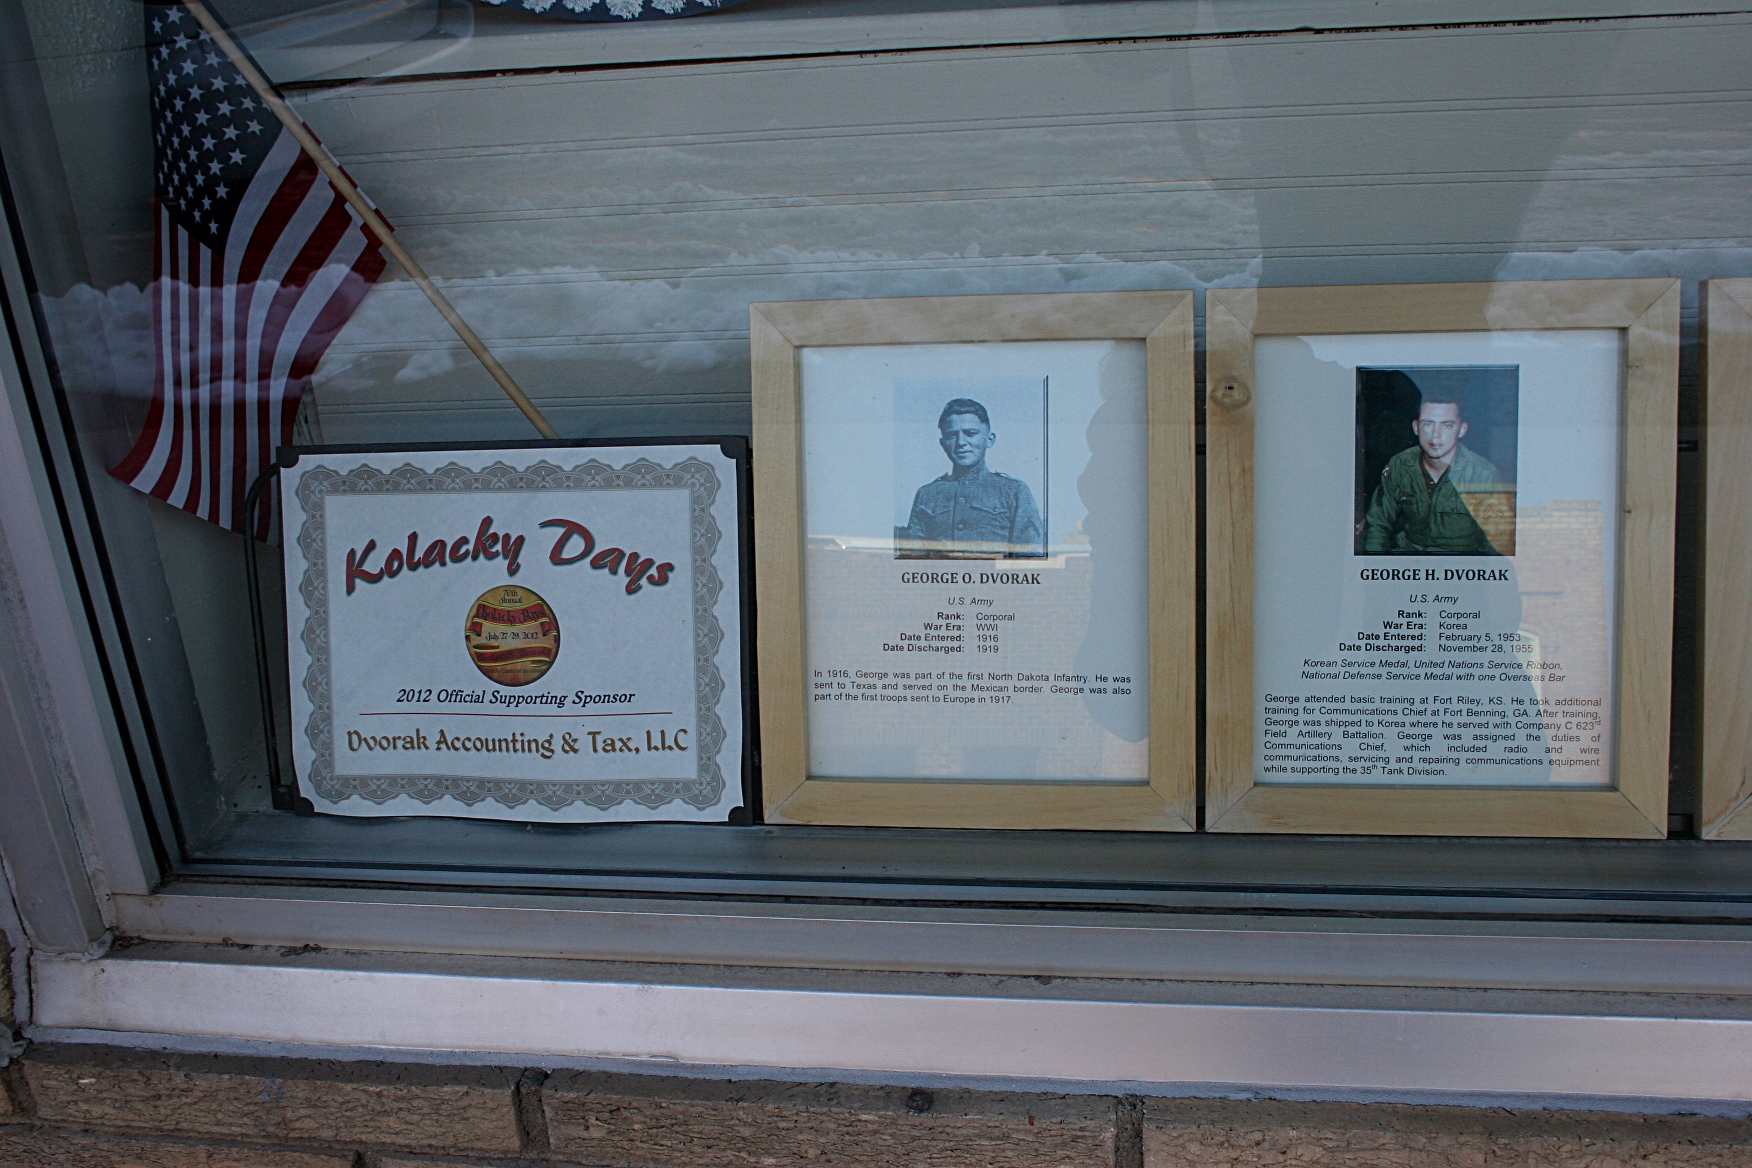 Veterans photos and info posted at Dvorak Accounting & Taxes.